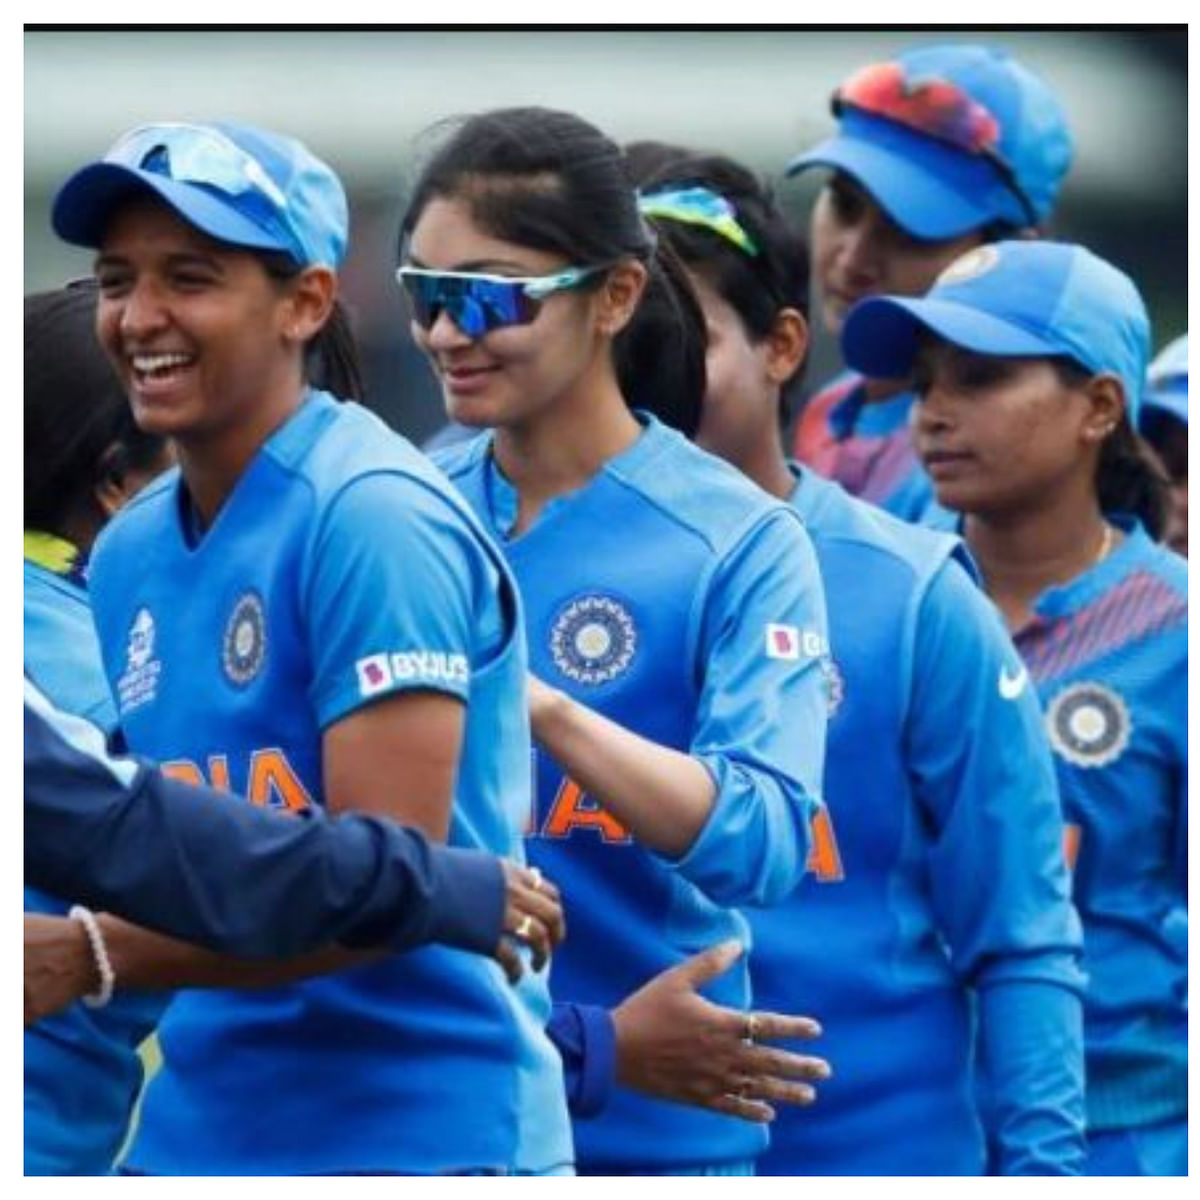 'God of Cricket' Sachin Tendulkar has  special message for Harmanpreet Kaur & co ahead of World Cup finals